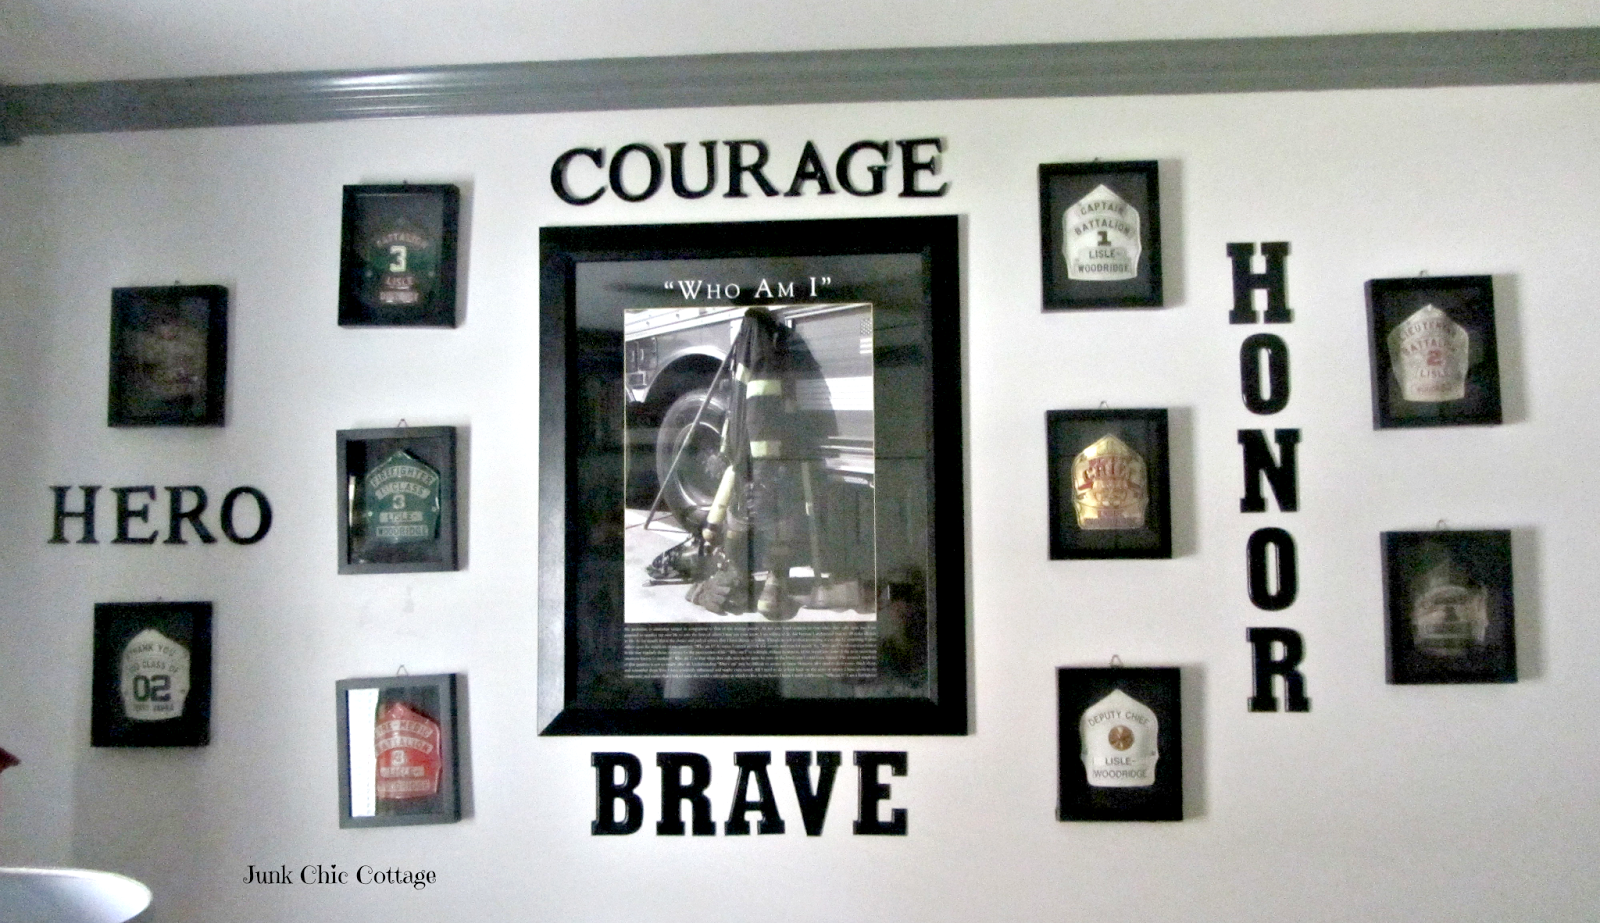 I made up this wall with all his leather shields that he has worn on his  helmut throughout the years  He started as a firefighter paramedic and rose  up  Junk Chic Cottage  October 2013. Firefighter Room Decor. Home Design Ideas